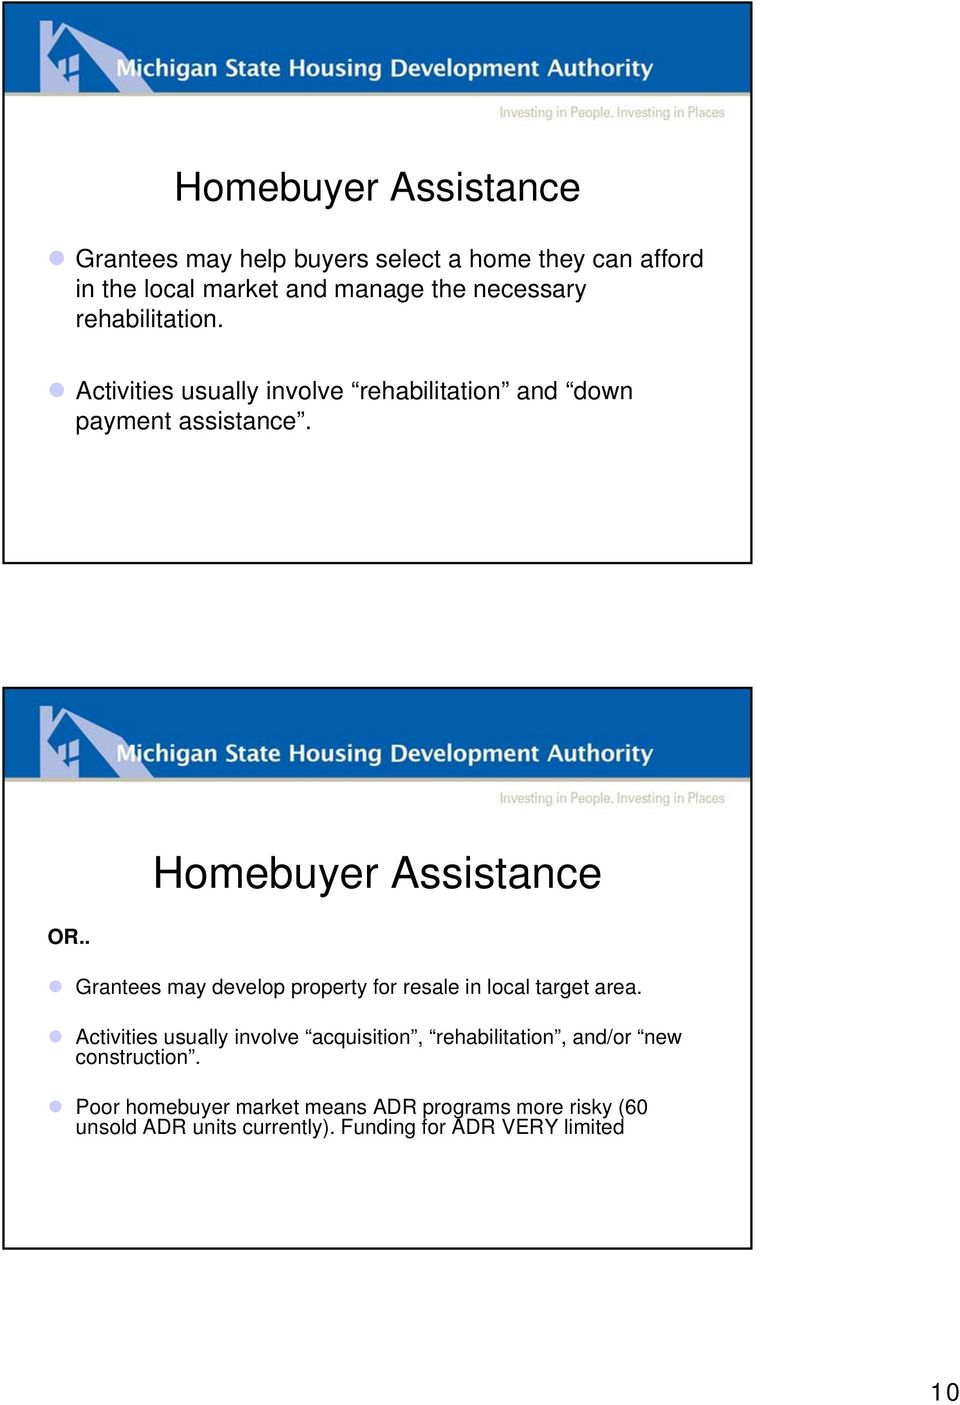 . Homebuyer Assistance Grantees may develop property for resale in local target area.